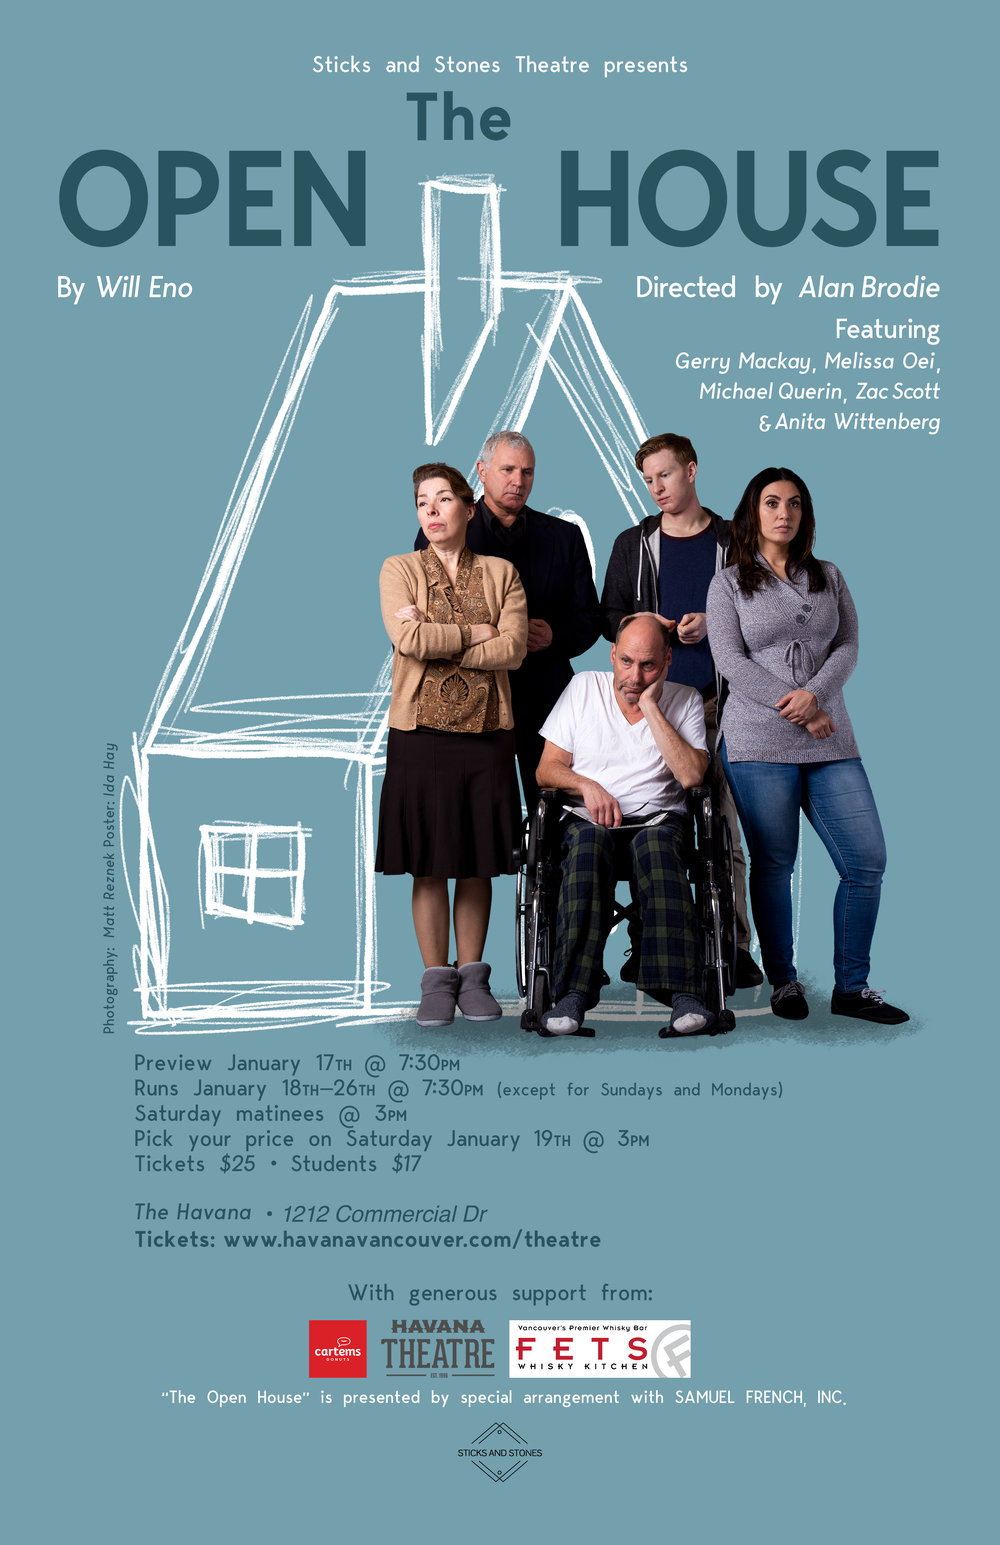 "- People have been born into families since people started getting born at all. Playwrights have been trying to write ""Family plays"" for a long time, too. And typically these plays try to answer endlessly complicated questions of blood, duty, inheritance and responsibility. They try to answer the question, ""Can things really change?"" People have been trying nobly for years and years to have plays solve in two hours what hasn't been solved in many lifetimes. This has to stop. In Eno's signature, inimitable style, The Open House offers a wildly subversive and darkly hilarious take on the archetypal family drama.Directed by Alan BrodiePreview January 17th @ 7:30 PMRuns January 18th, 19th, 22nd, 23rd, 24th, 25th and 26th @ 7:30 PMMatinees on January 19th and 26th @ 3 PMJanuary 19th matinee is pick your priceTickets are $25$17 for studentsProduction runs approximately 1 and 1/2 hours with no intermissionWarning: Some strong language"